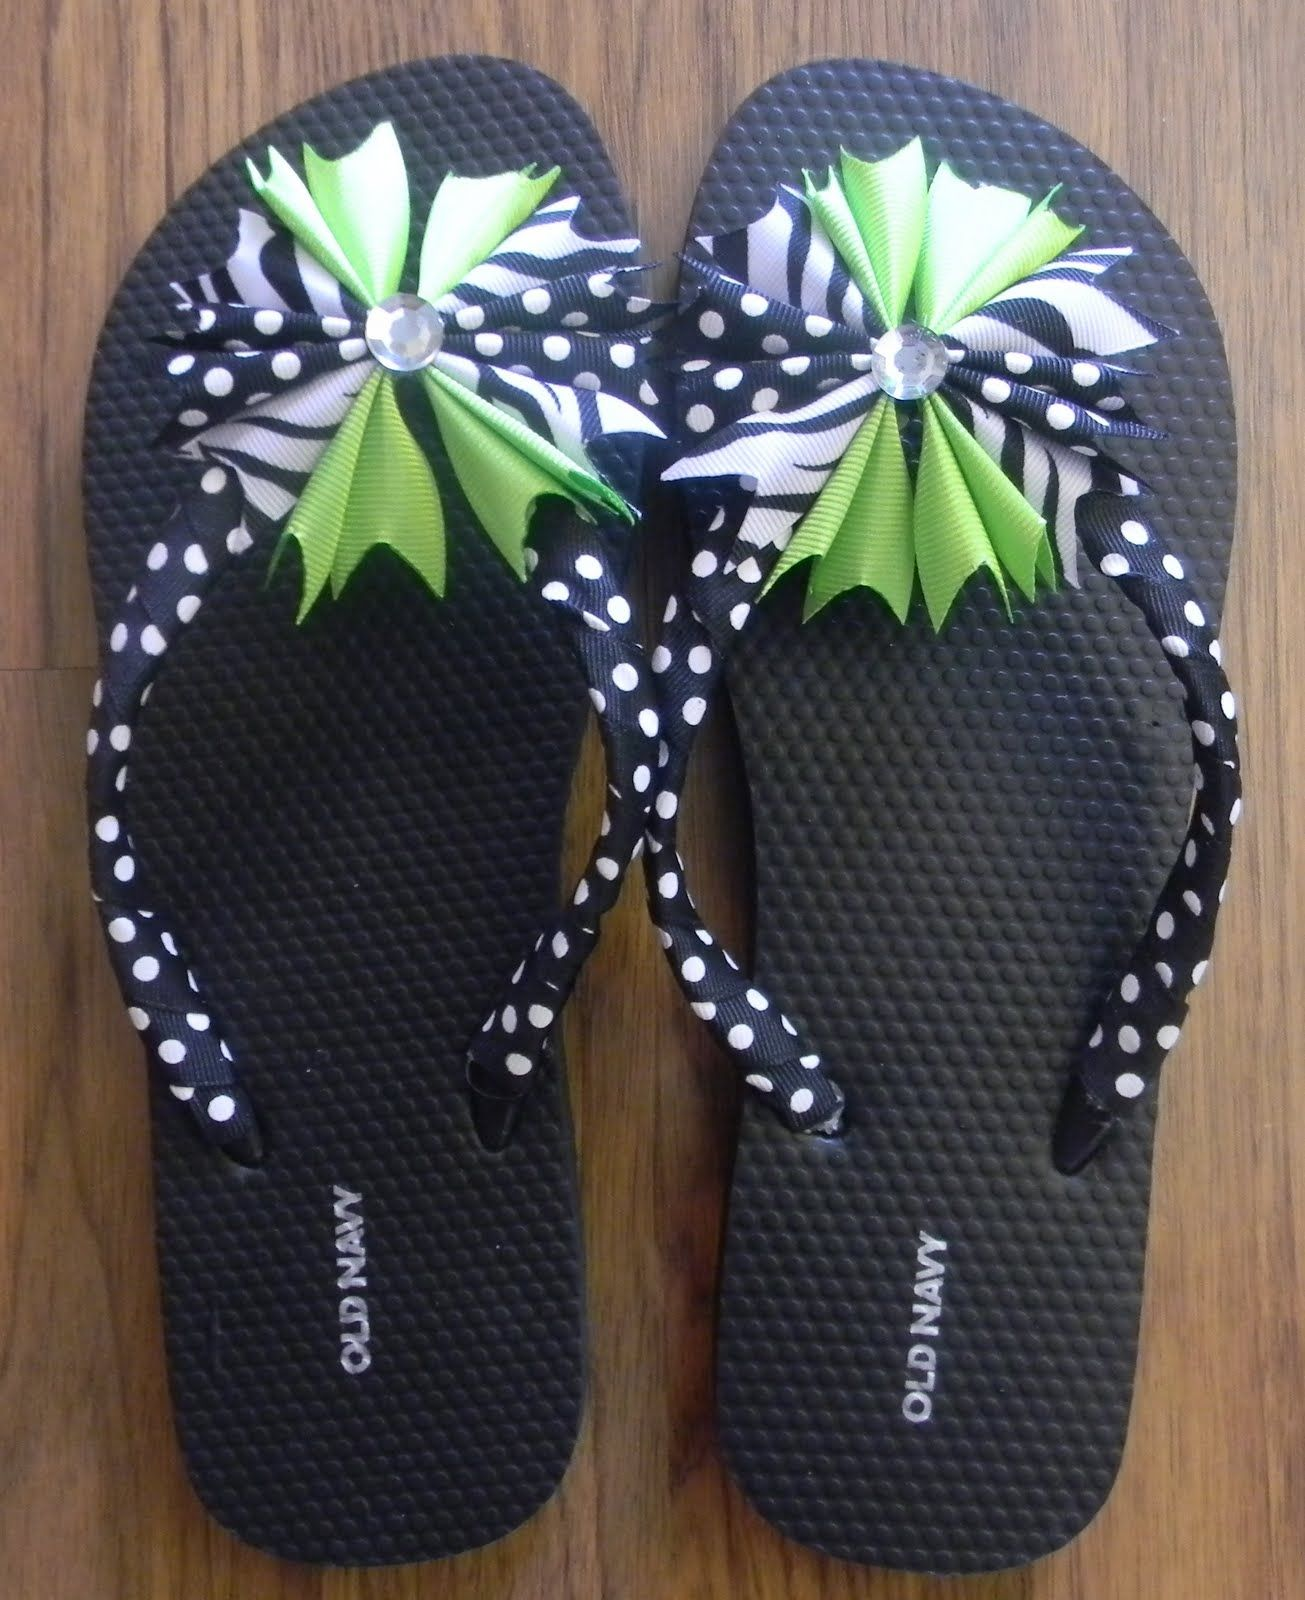 b71dffa54464 Ribbon flip flops-LOVE these!! Need to learn how to make them ...